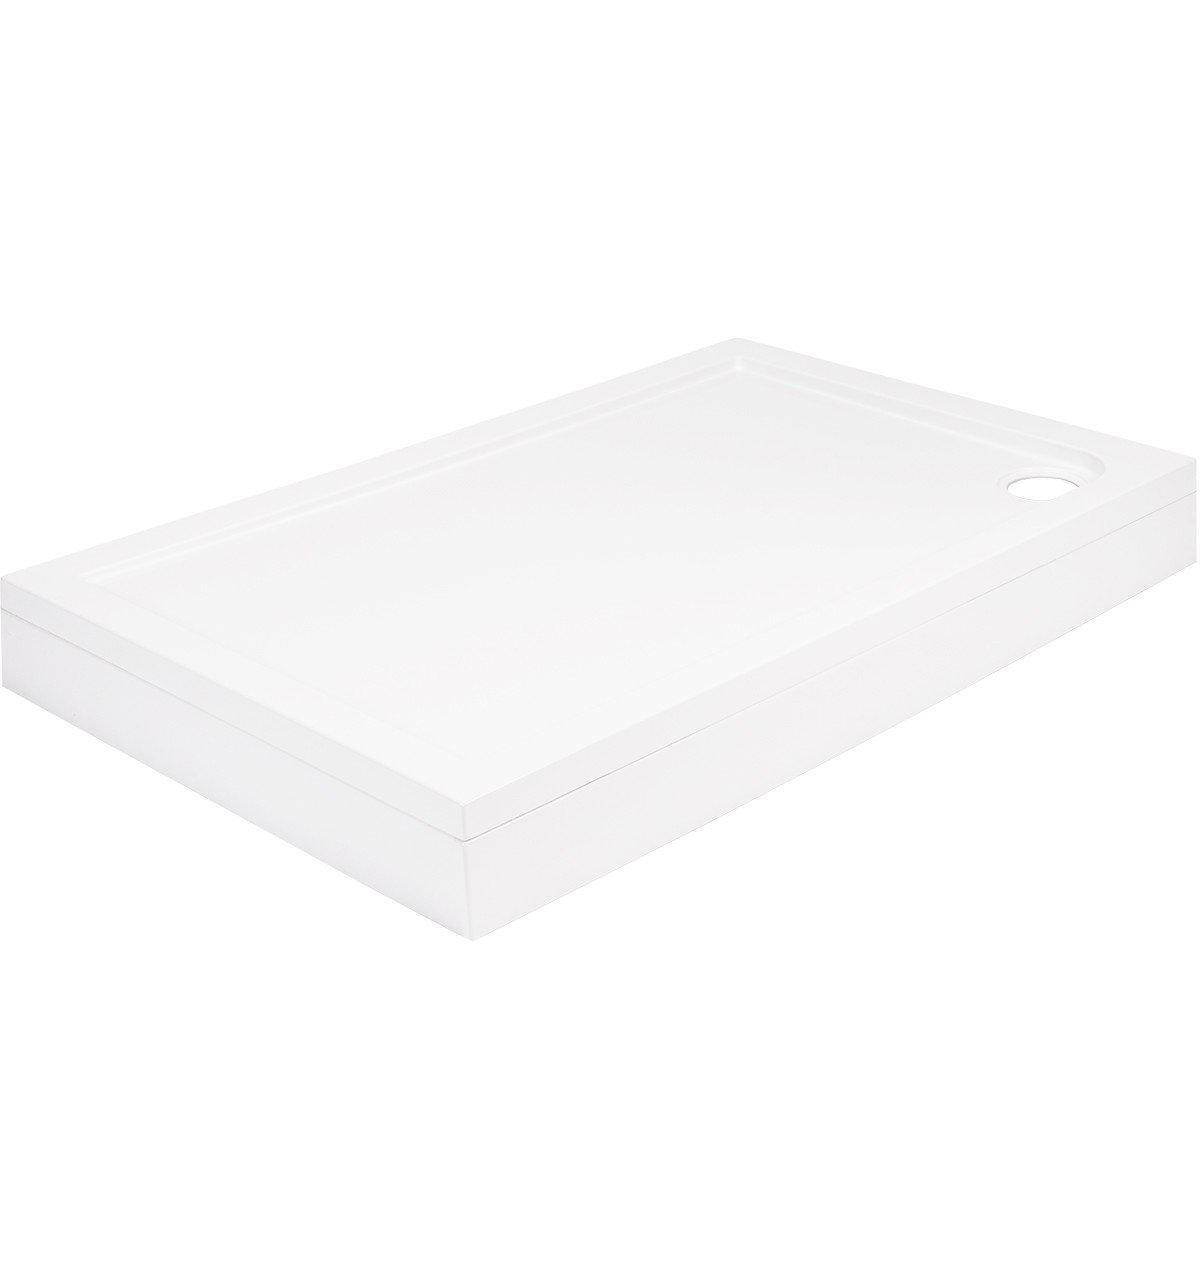 40mm Pearlstone 1000 x 760 Rectangular Shower Tray & Plinth